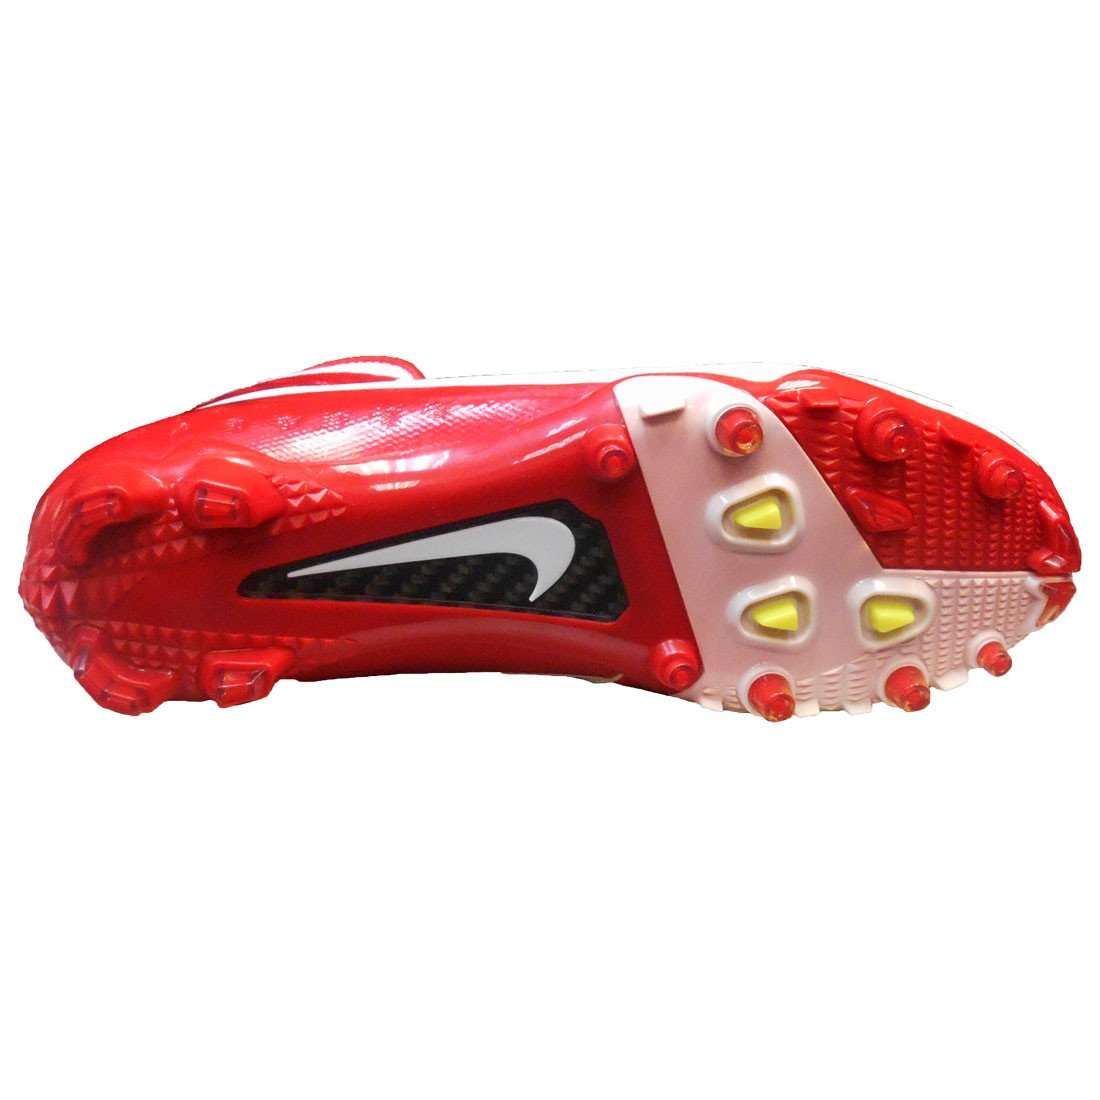 64c646d7e98e ... Nike Vapor Talon Elite 3/4 Football Cleats - League Outfitters ...